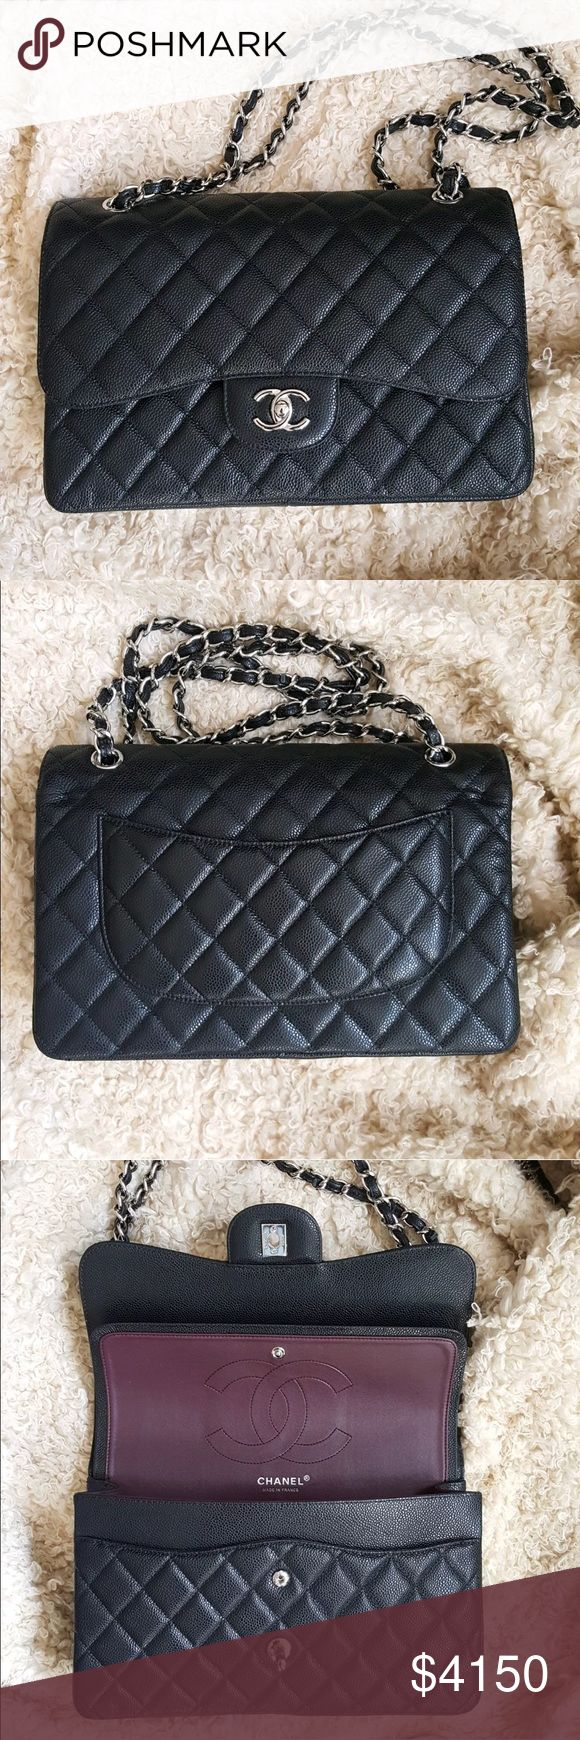 Chanel Classic Jumbo Double Flap Caviar Bag Beautiful Chanel caviar jumbo flap bag with silver hardware. Brand new without tags! Comes with the dustbag and the card of authenticity. It can fit a ton of things! Retail: $5,900. Send me an offer, I might accept! Thanks for looking! :) CHANEL Bags